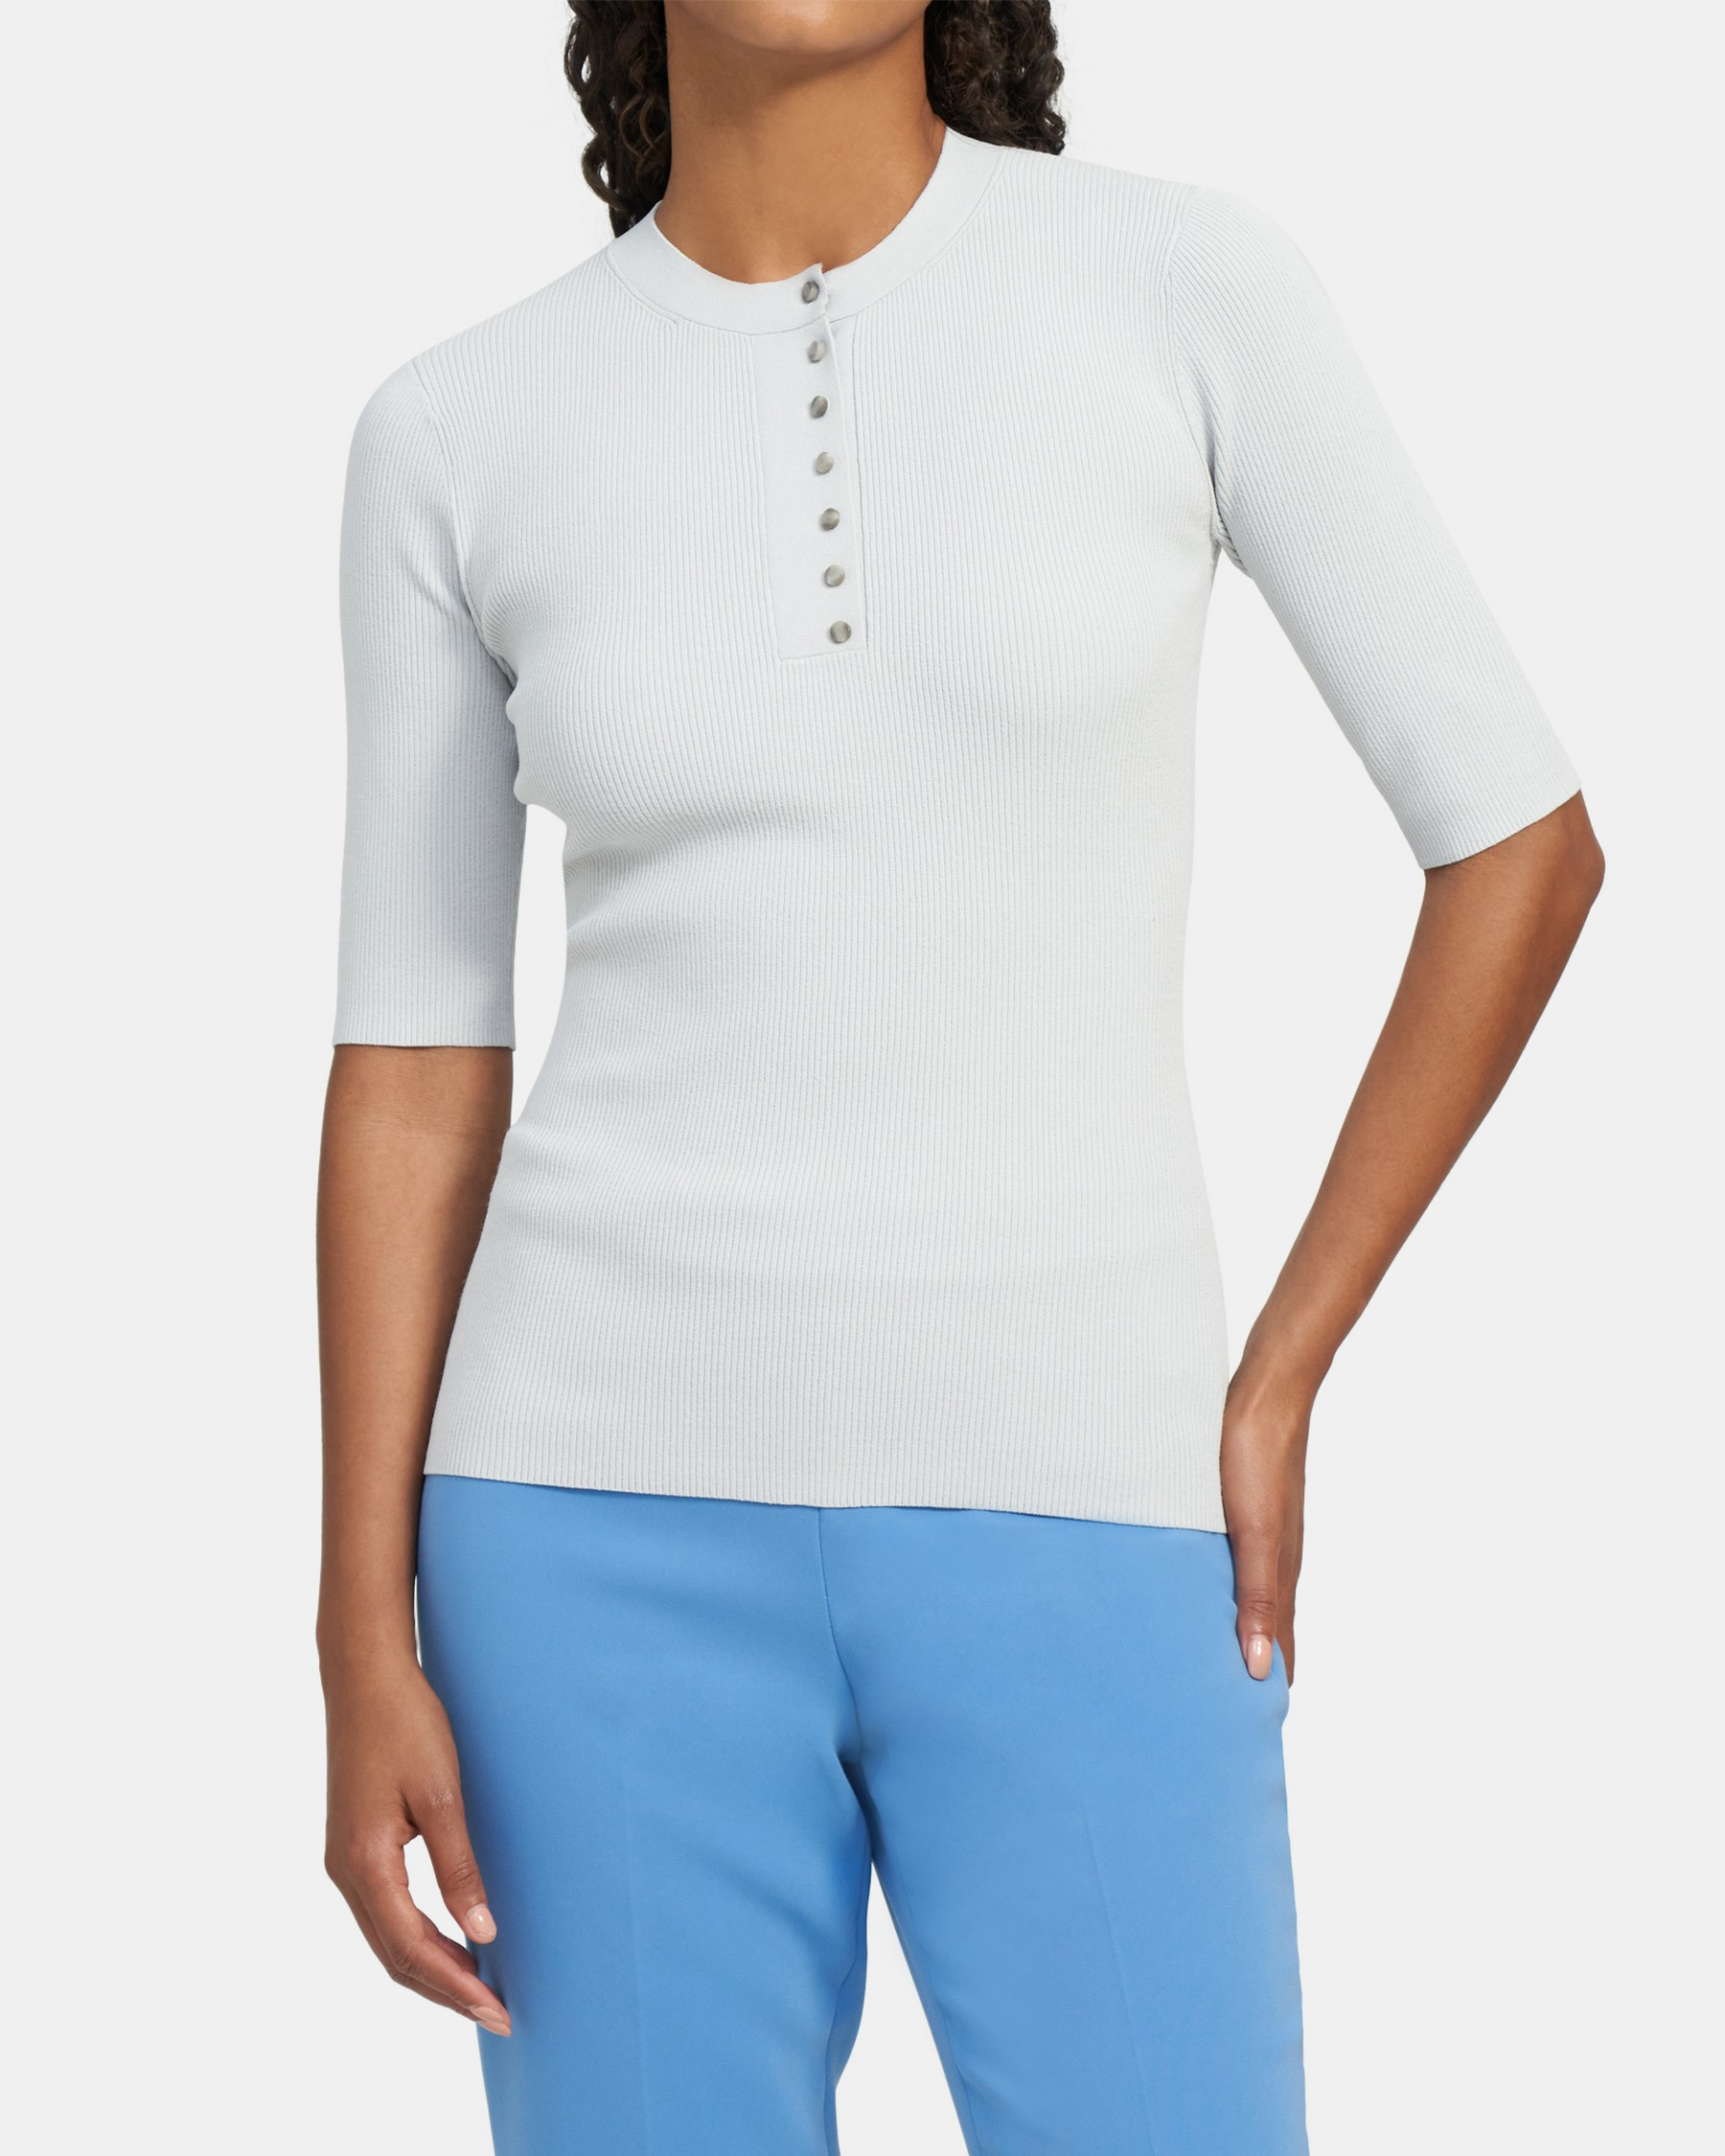 Short-Sleeve Shirt in Compact Sweater Knit   Theory